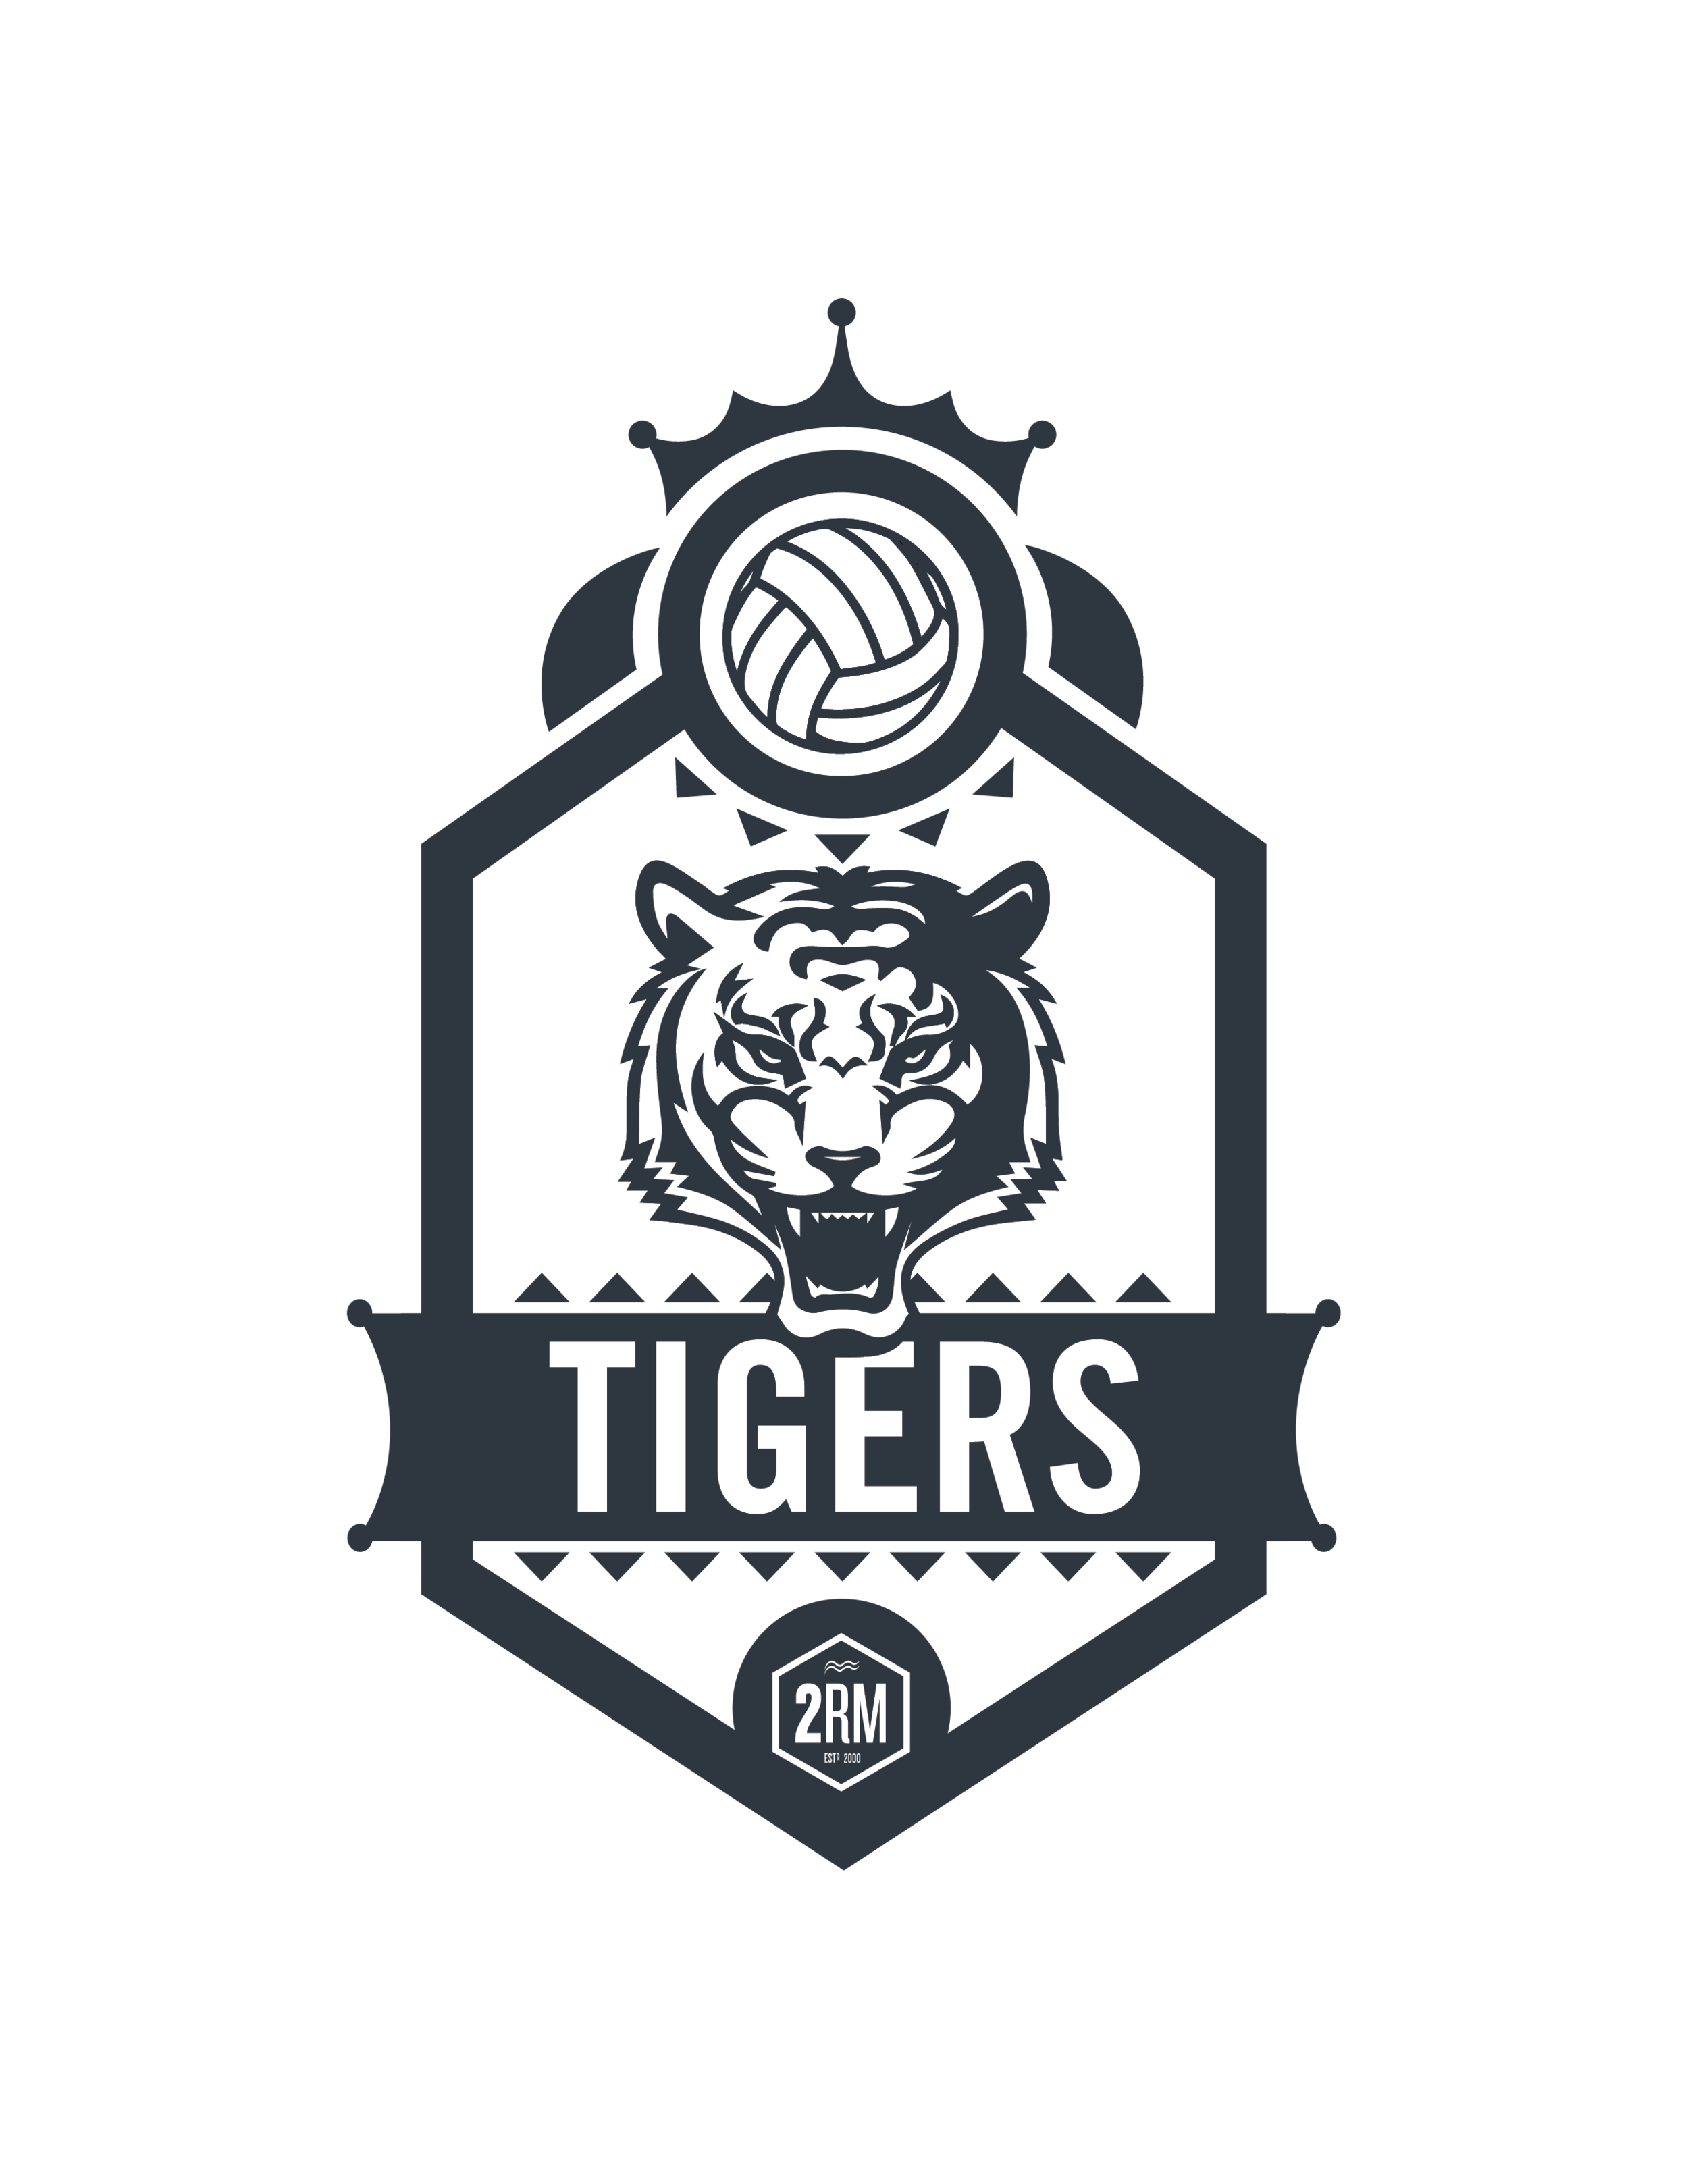 TWO RIVERS TIGERS_TSHIRTS_Badge copy-01.png